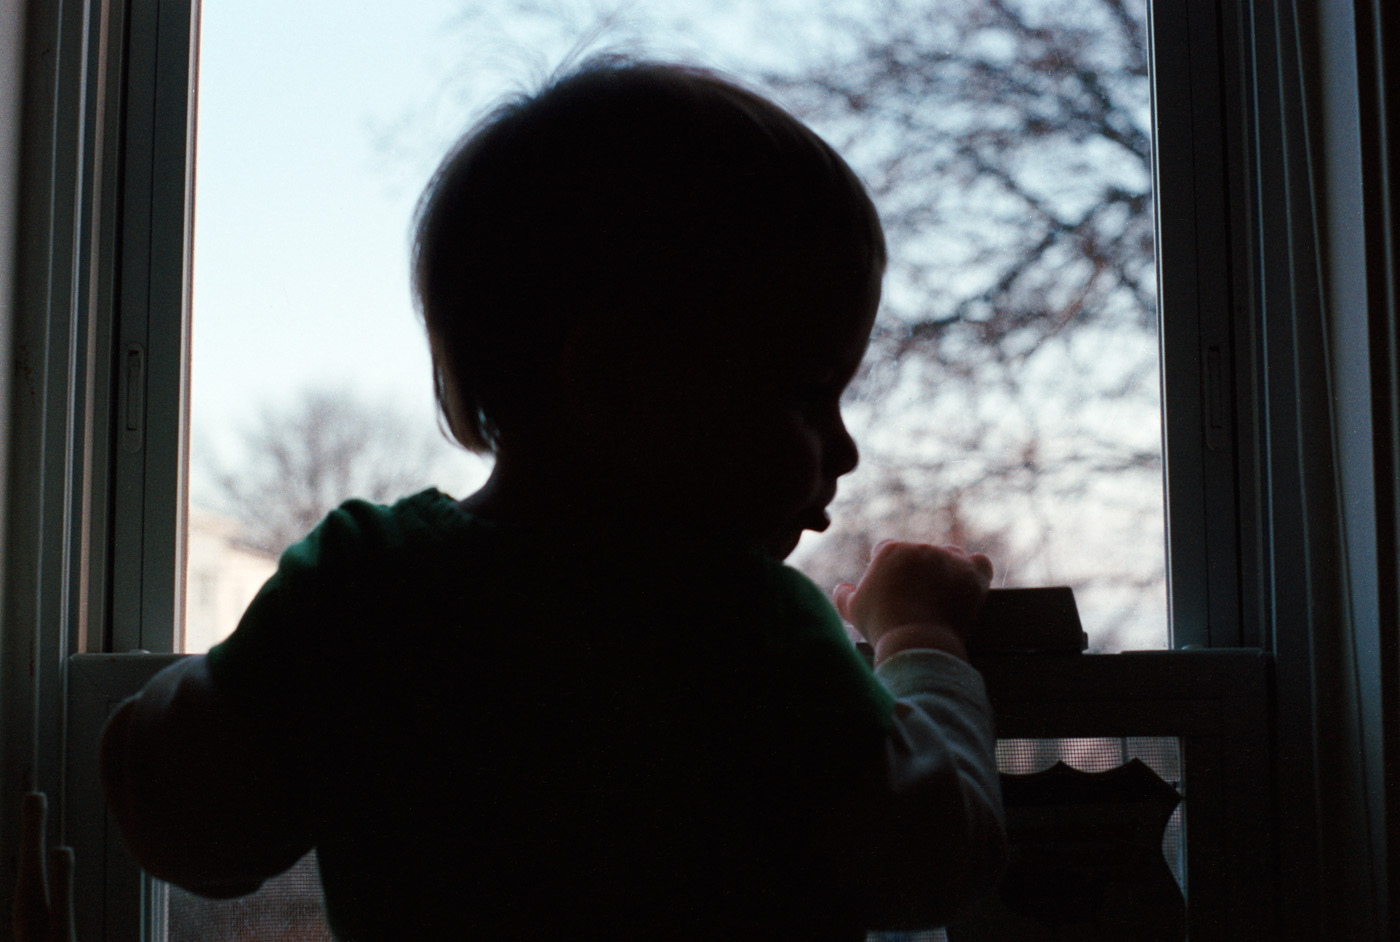 Baby playing with the Window  |  Frame 6